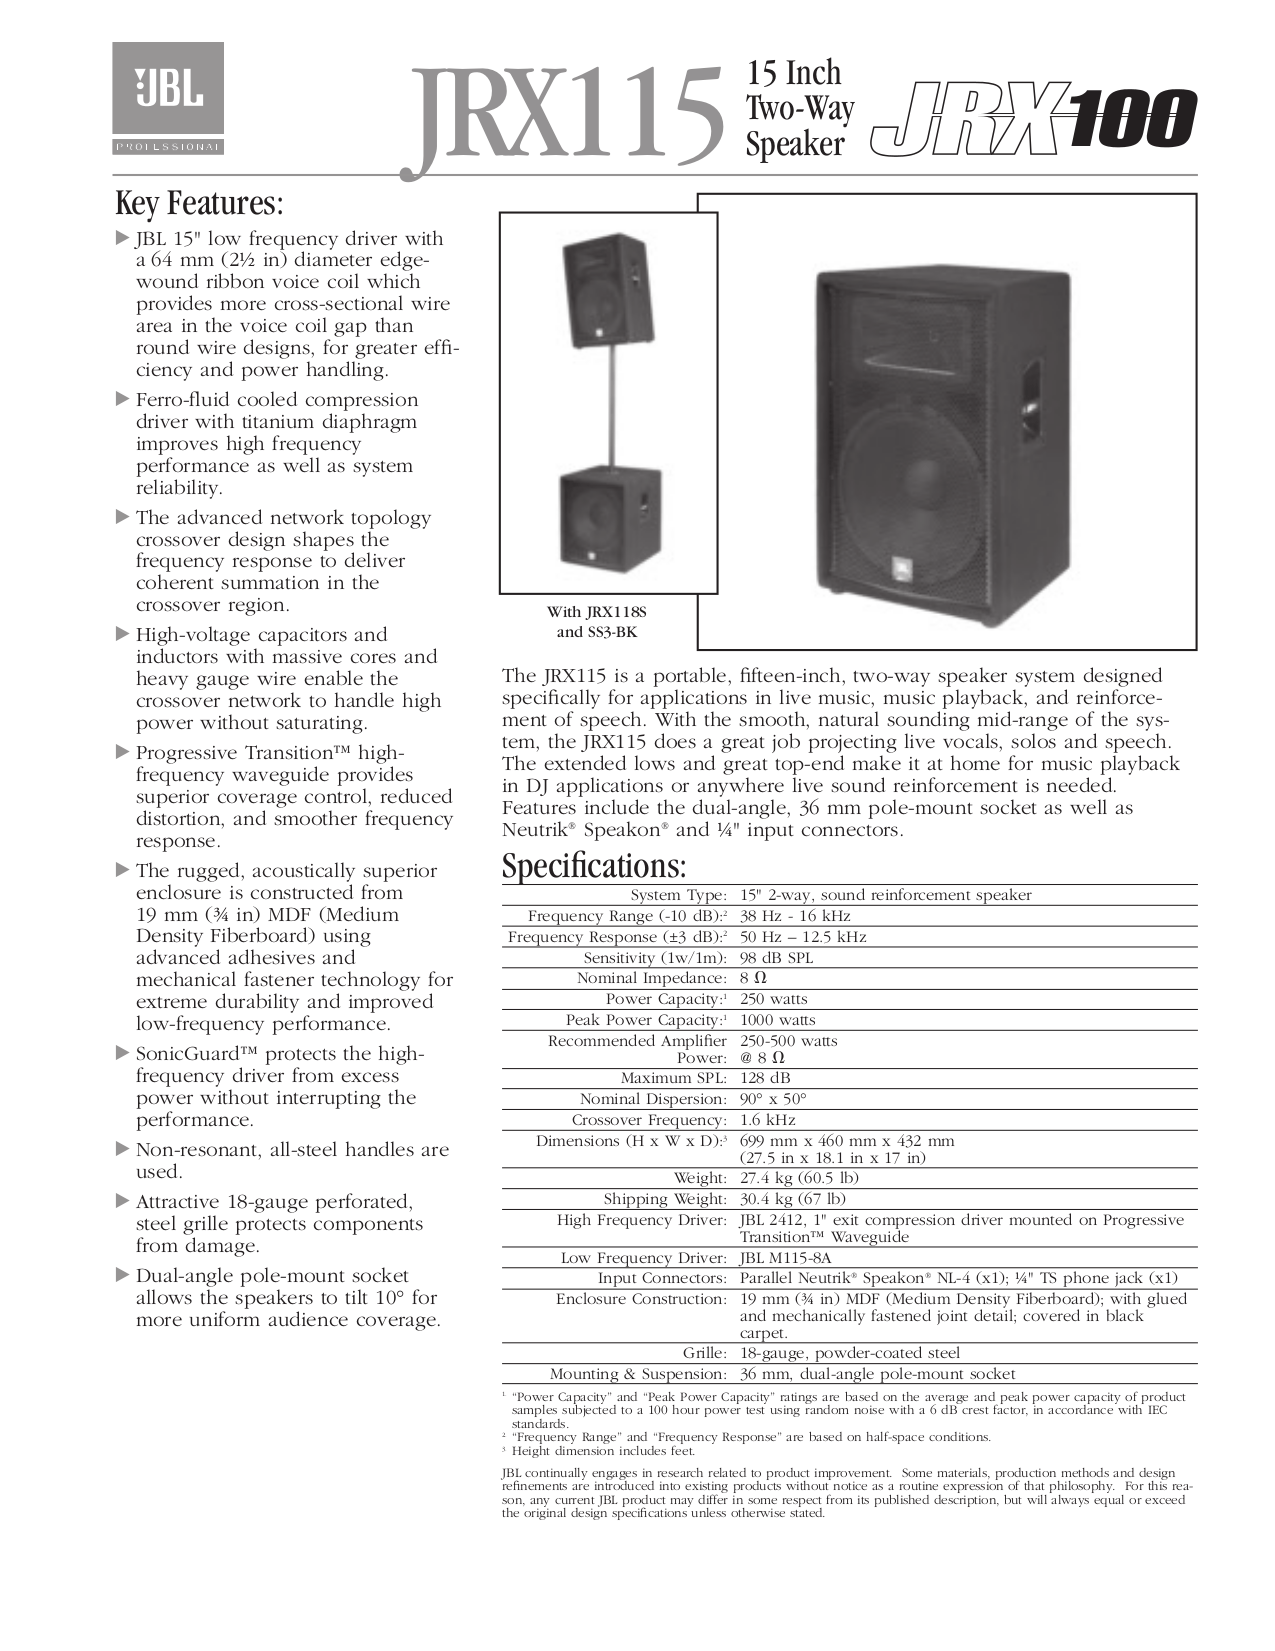 PDF manual for JBL Speaker TS 1